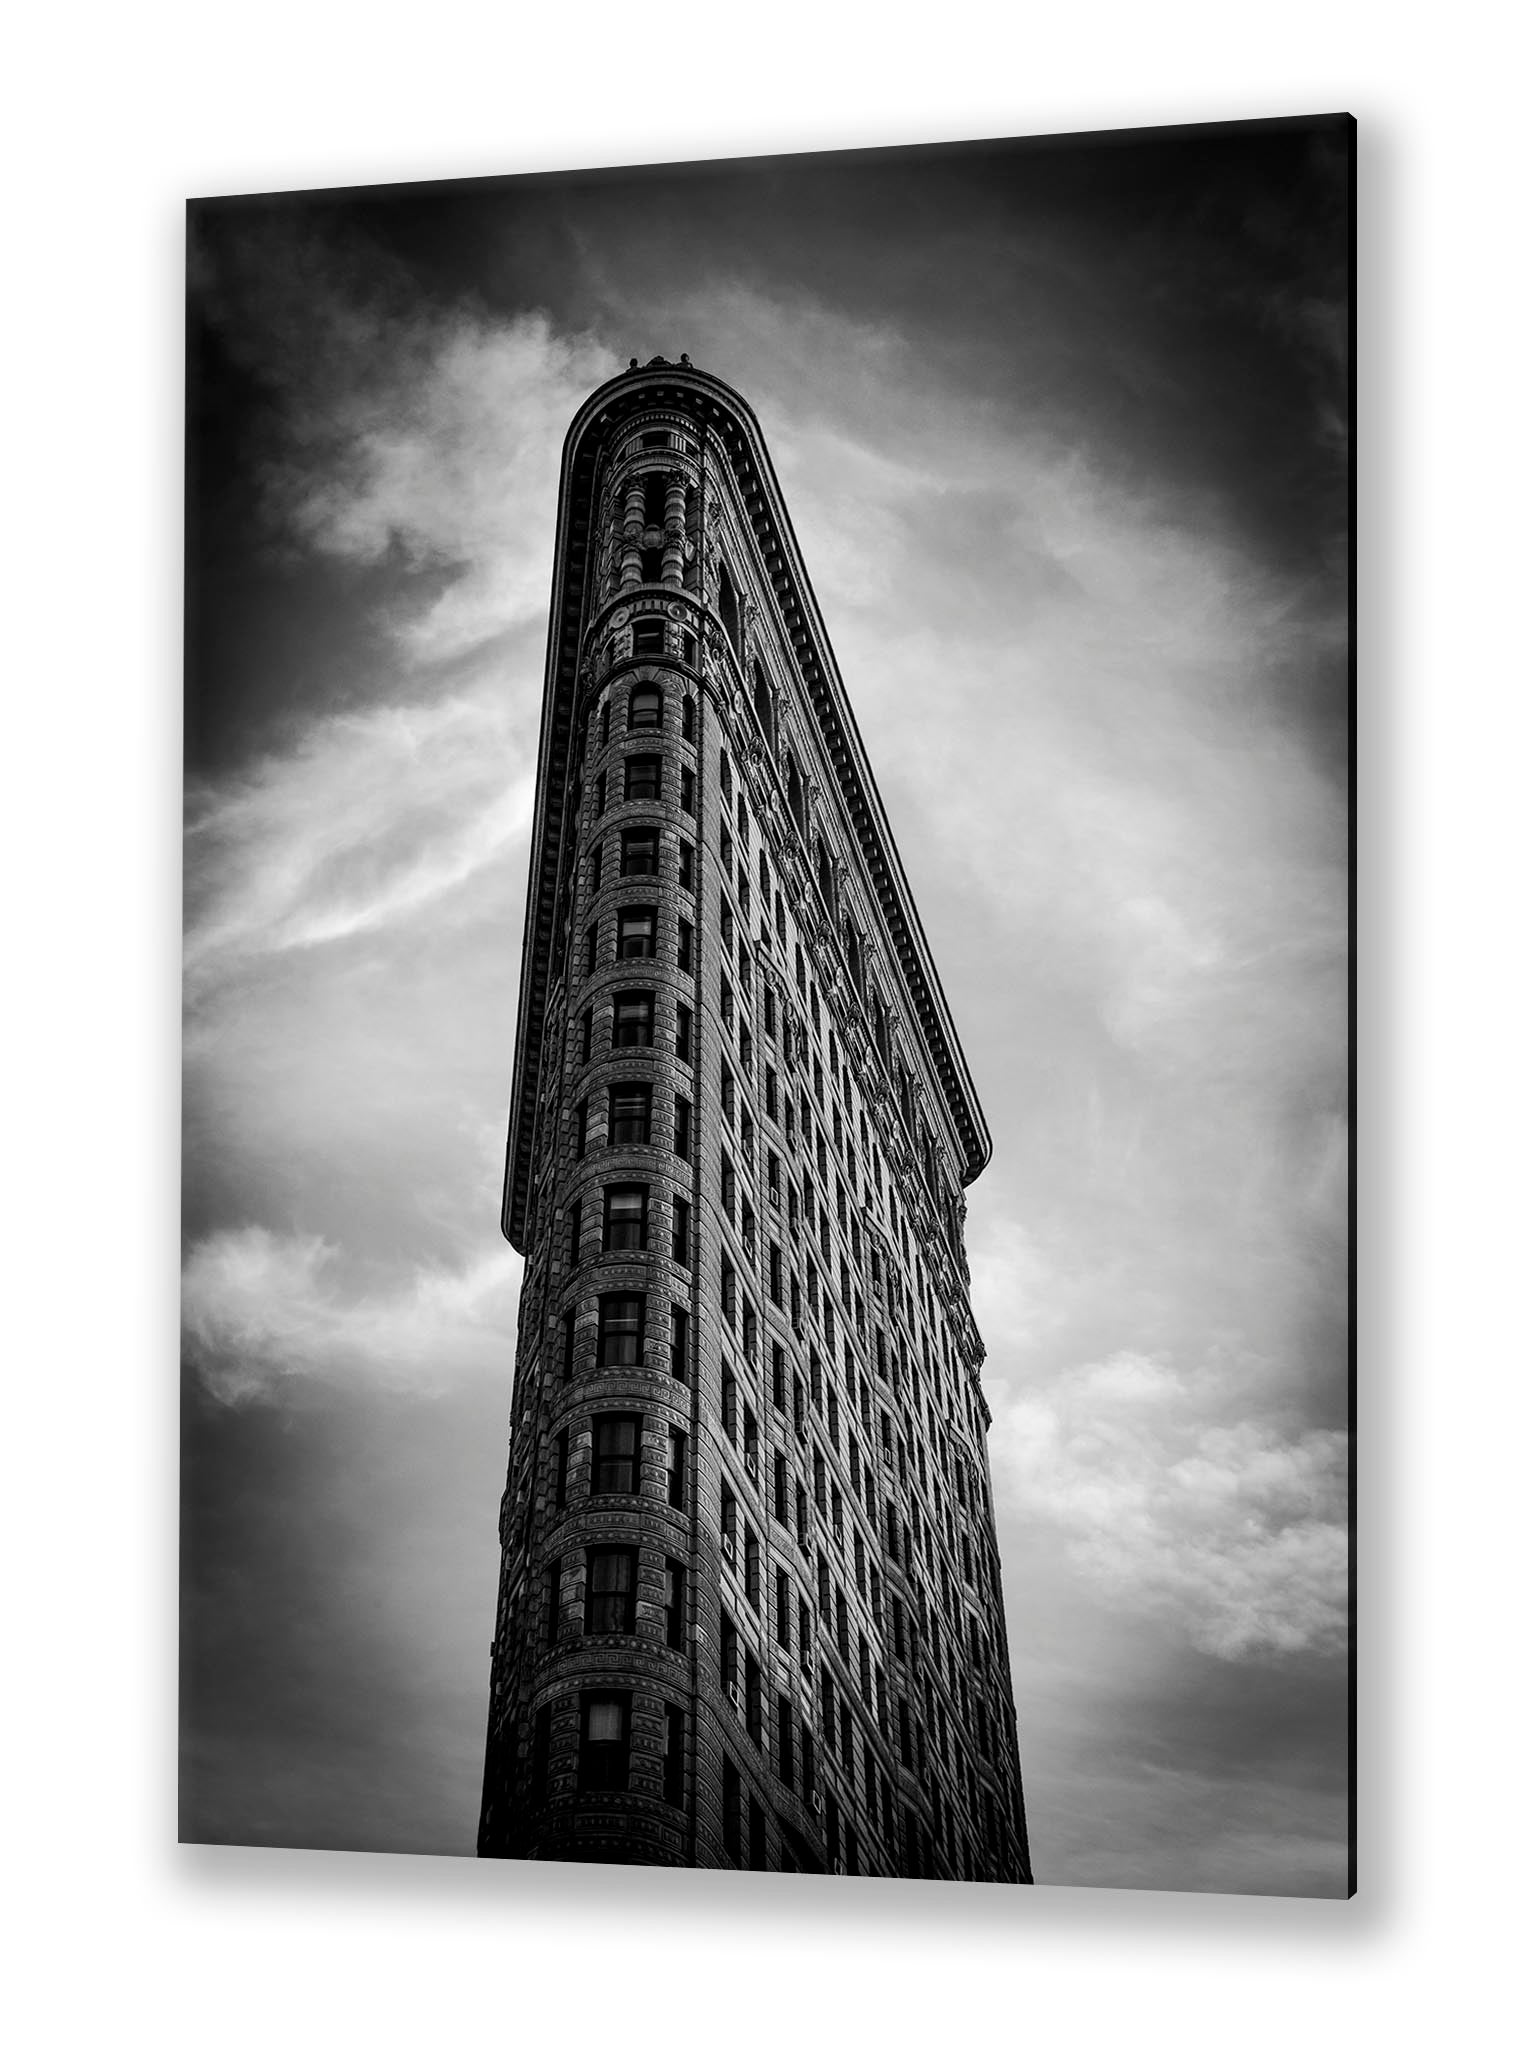 Flatiron Building, New York | Special edition Art Print on Aluminium